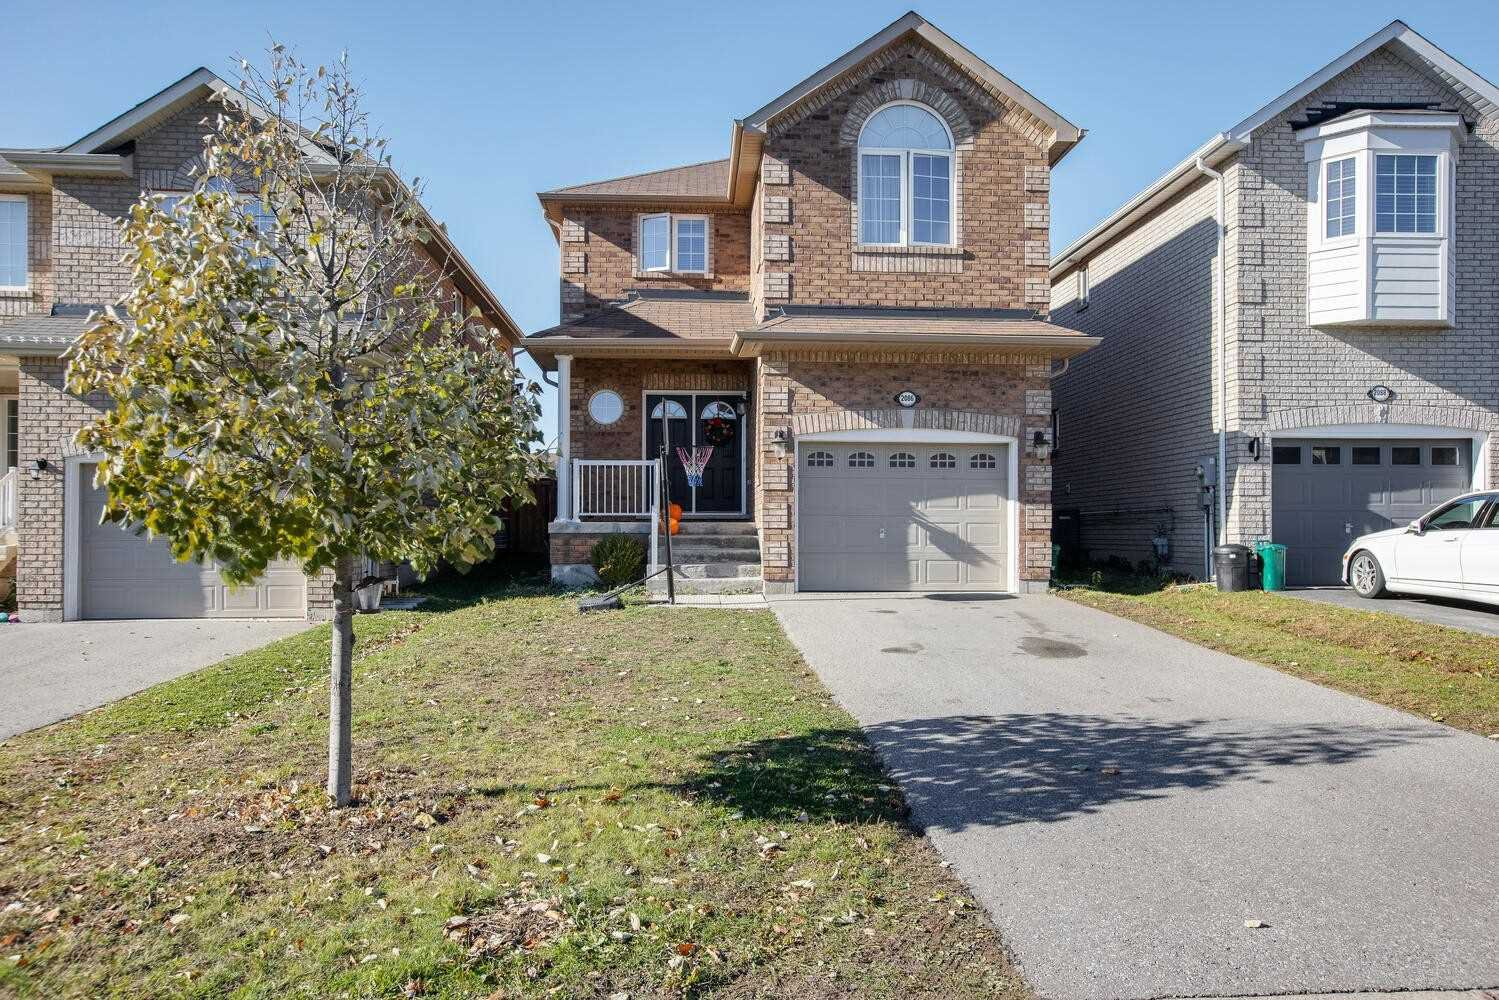 Main Photo: 2086 Galloway Street in Innisfil: Alcona House (2-Storey) for sale : MLS®# N4979798